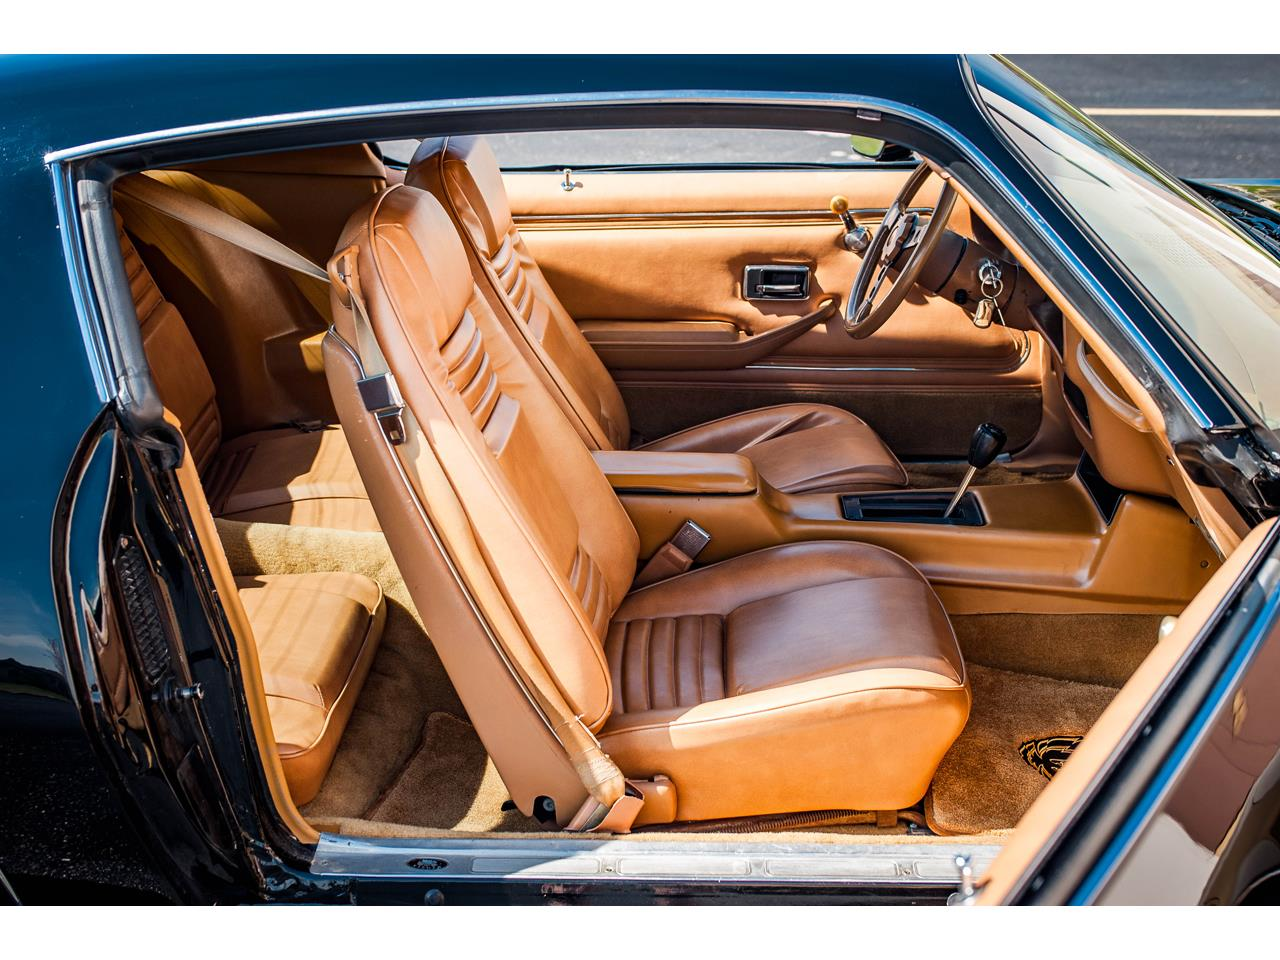 Large Picture of '79 Pontiac Firebird - $36,500.00 Offered by Gateway Classic Cars - St. Louis - QB8A